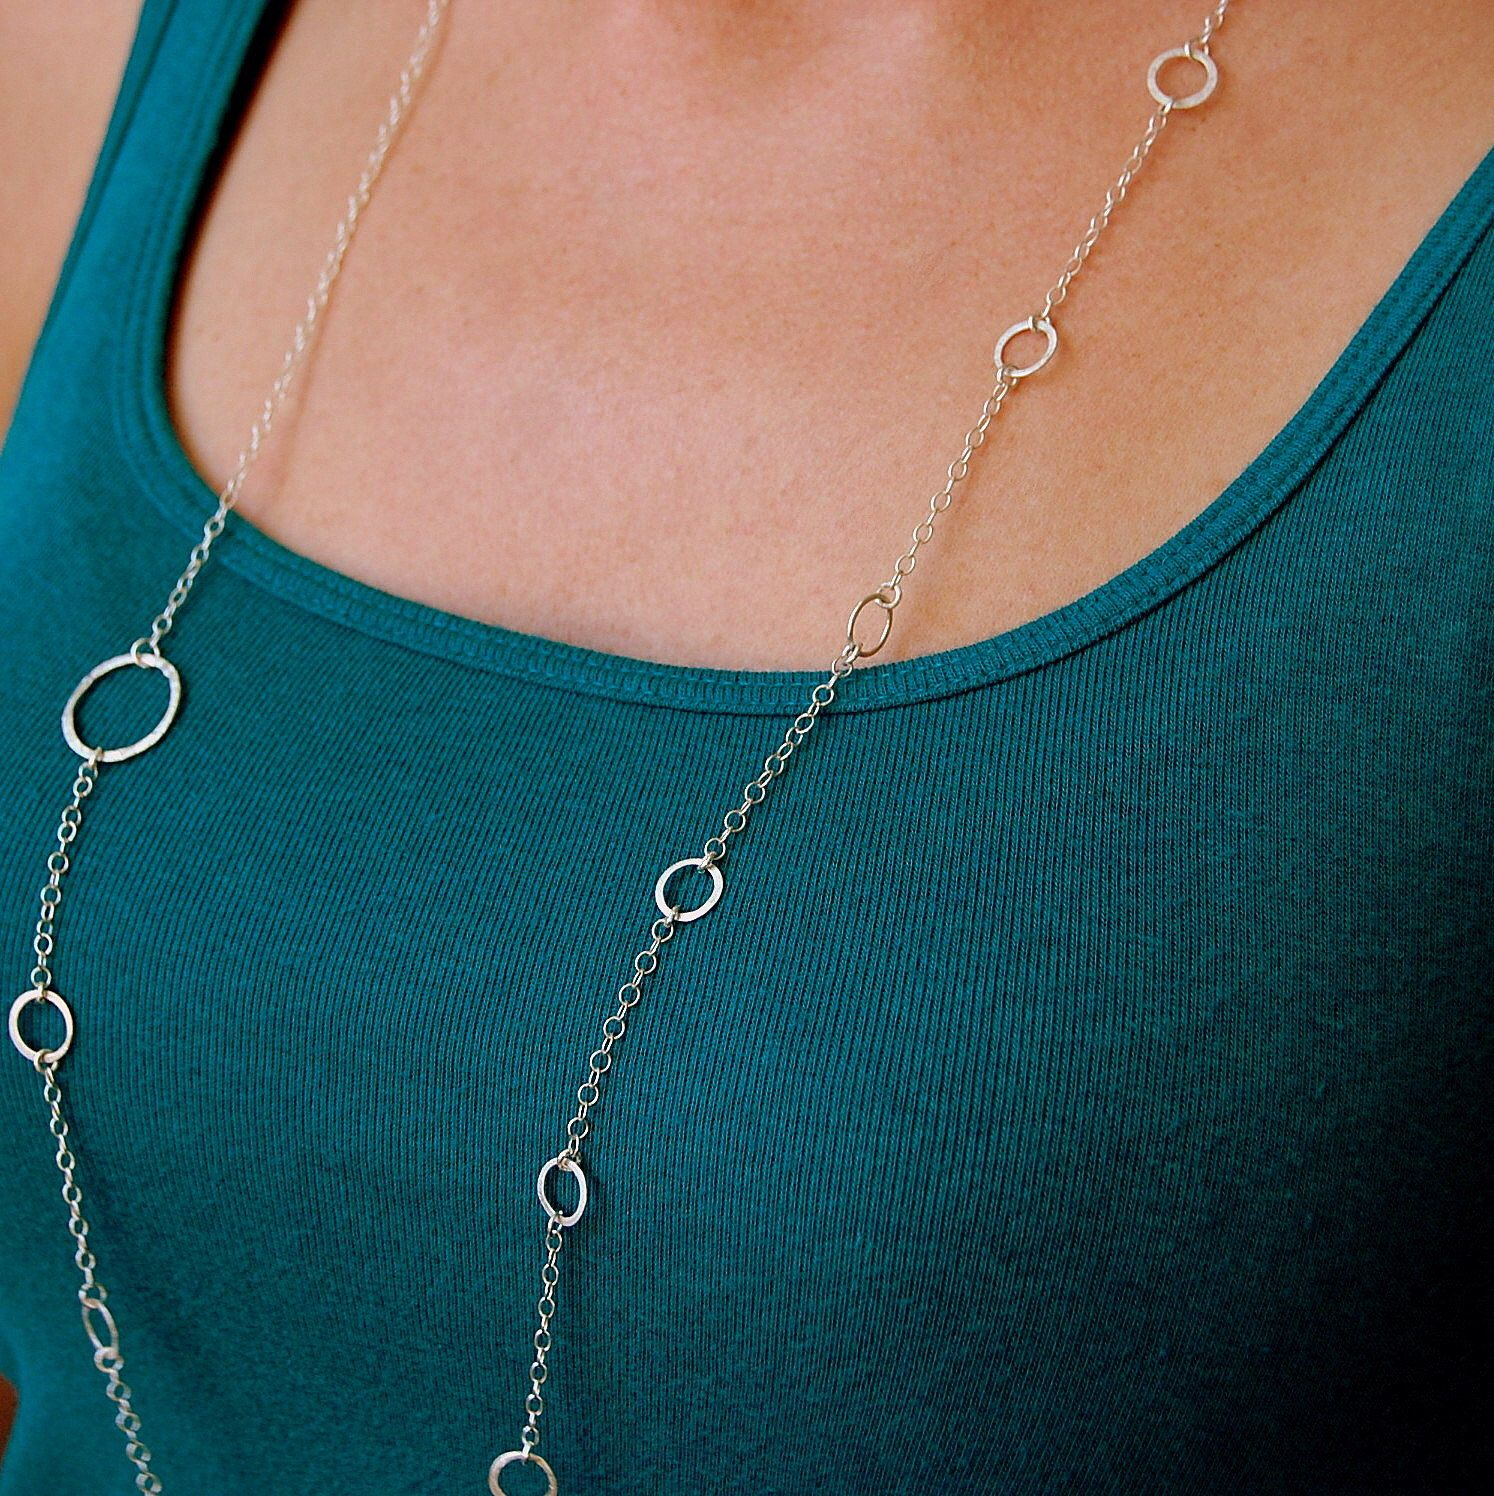 Asymmetrical Hammered Sterling Silver Necklace, Long Necklace by KyanneCreations on Etsy https://www.etsy.com/listing/111198062/asymmetrical-hammered-sterling-silver